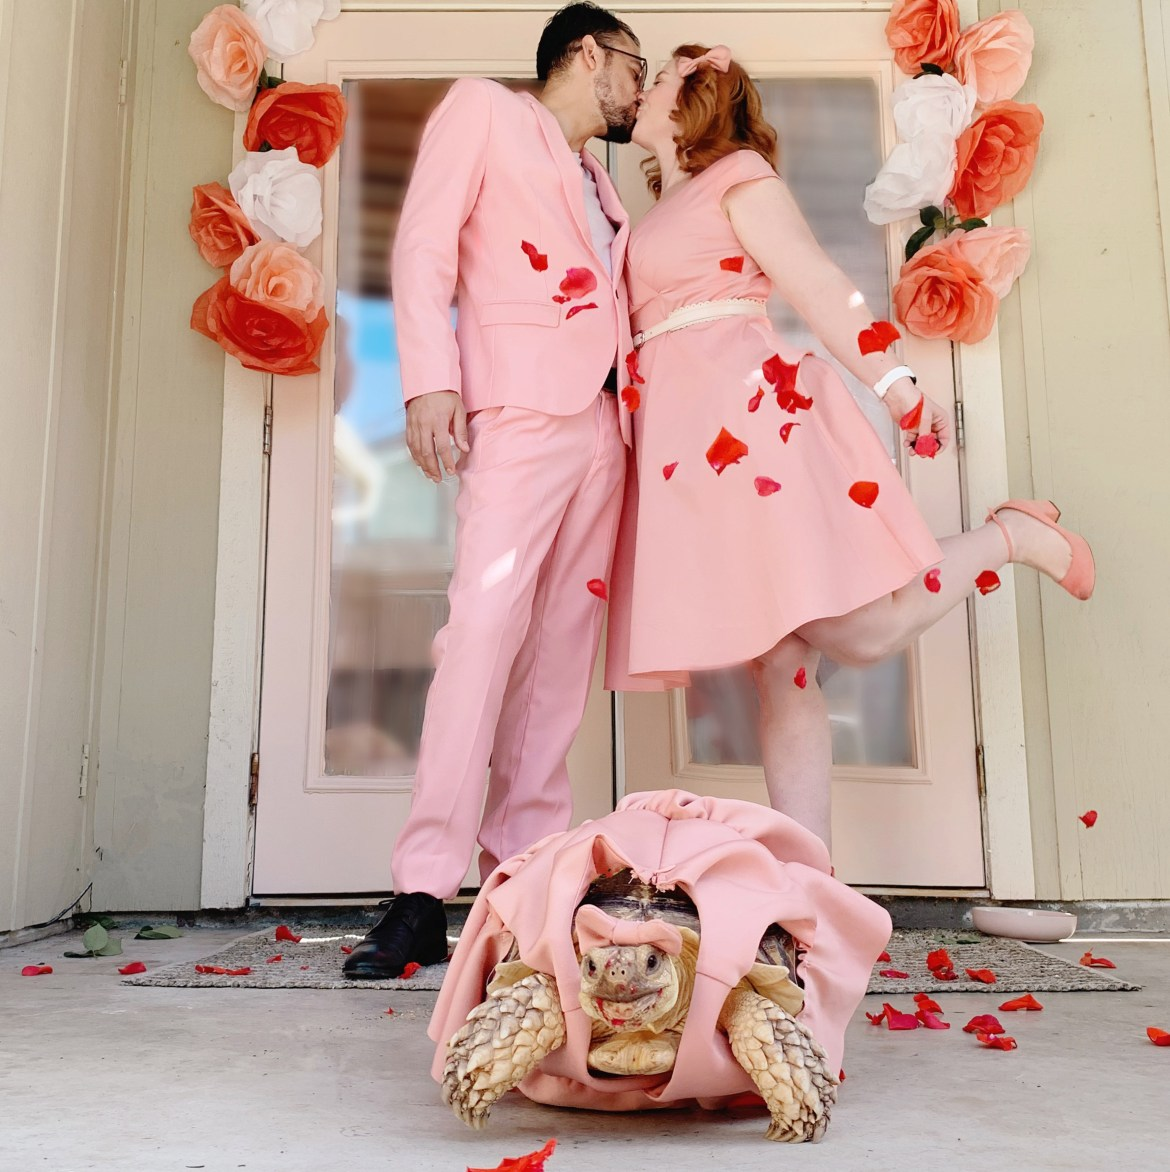 Couple dress their tortoise in matching pink formalwear